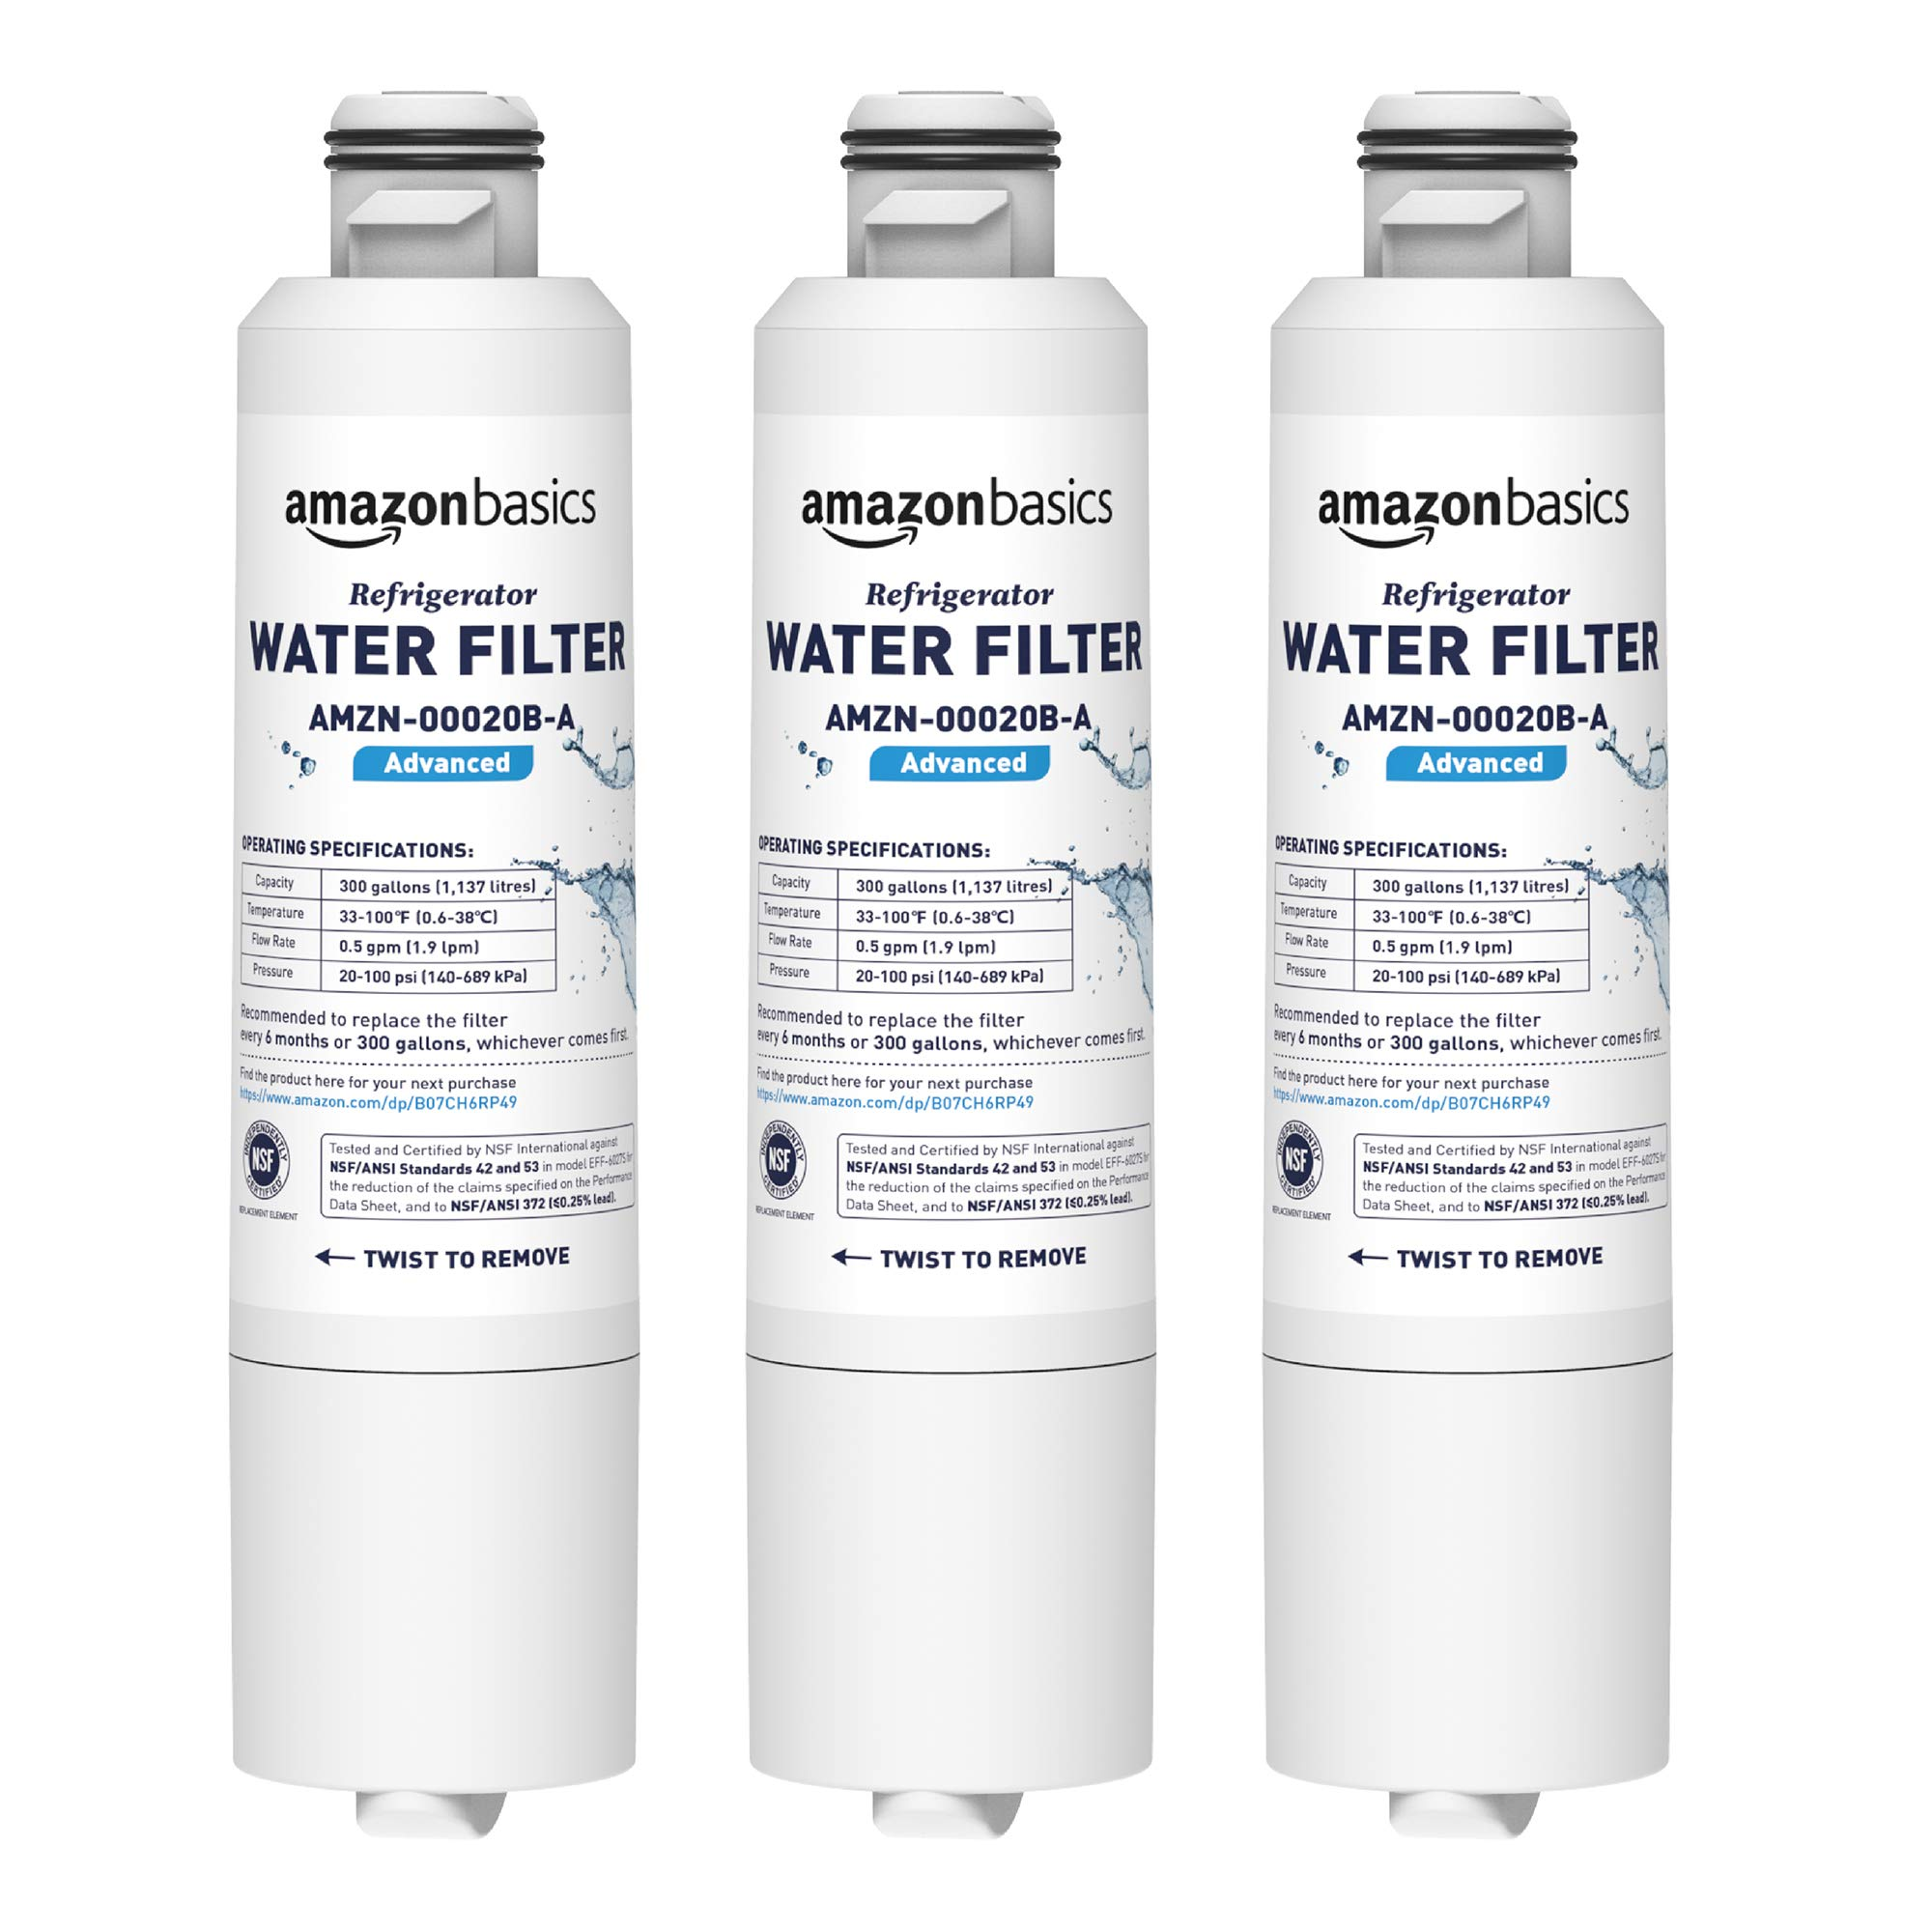 AmazonBasics Replacement Samsung DA29-00020B Refrigerator Water Filter Cartridge - Pack of 3, Advanced Filtration